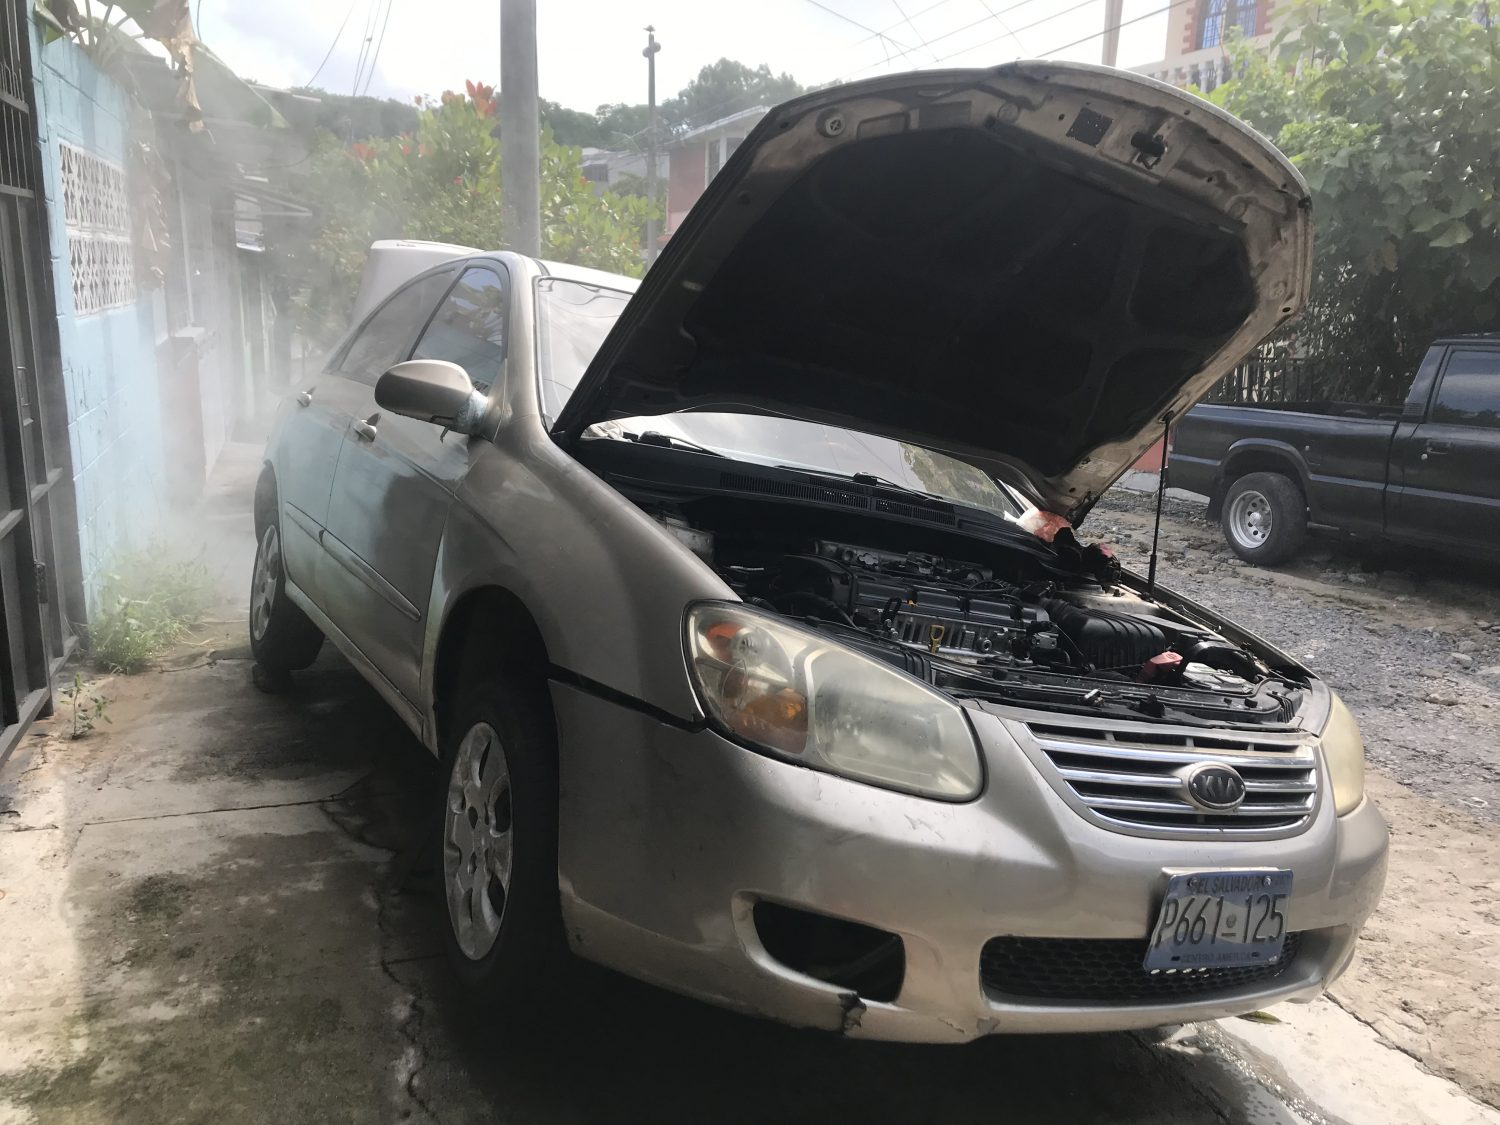 Finding a Mechanic in Central America